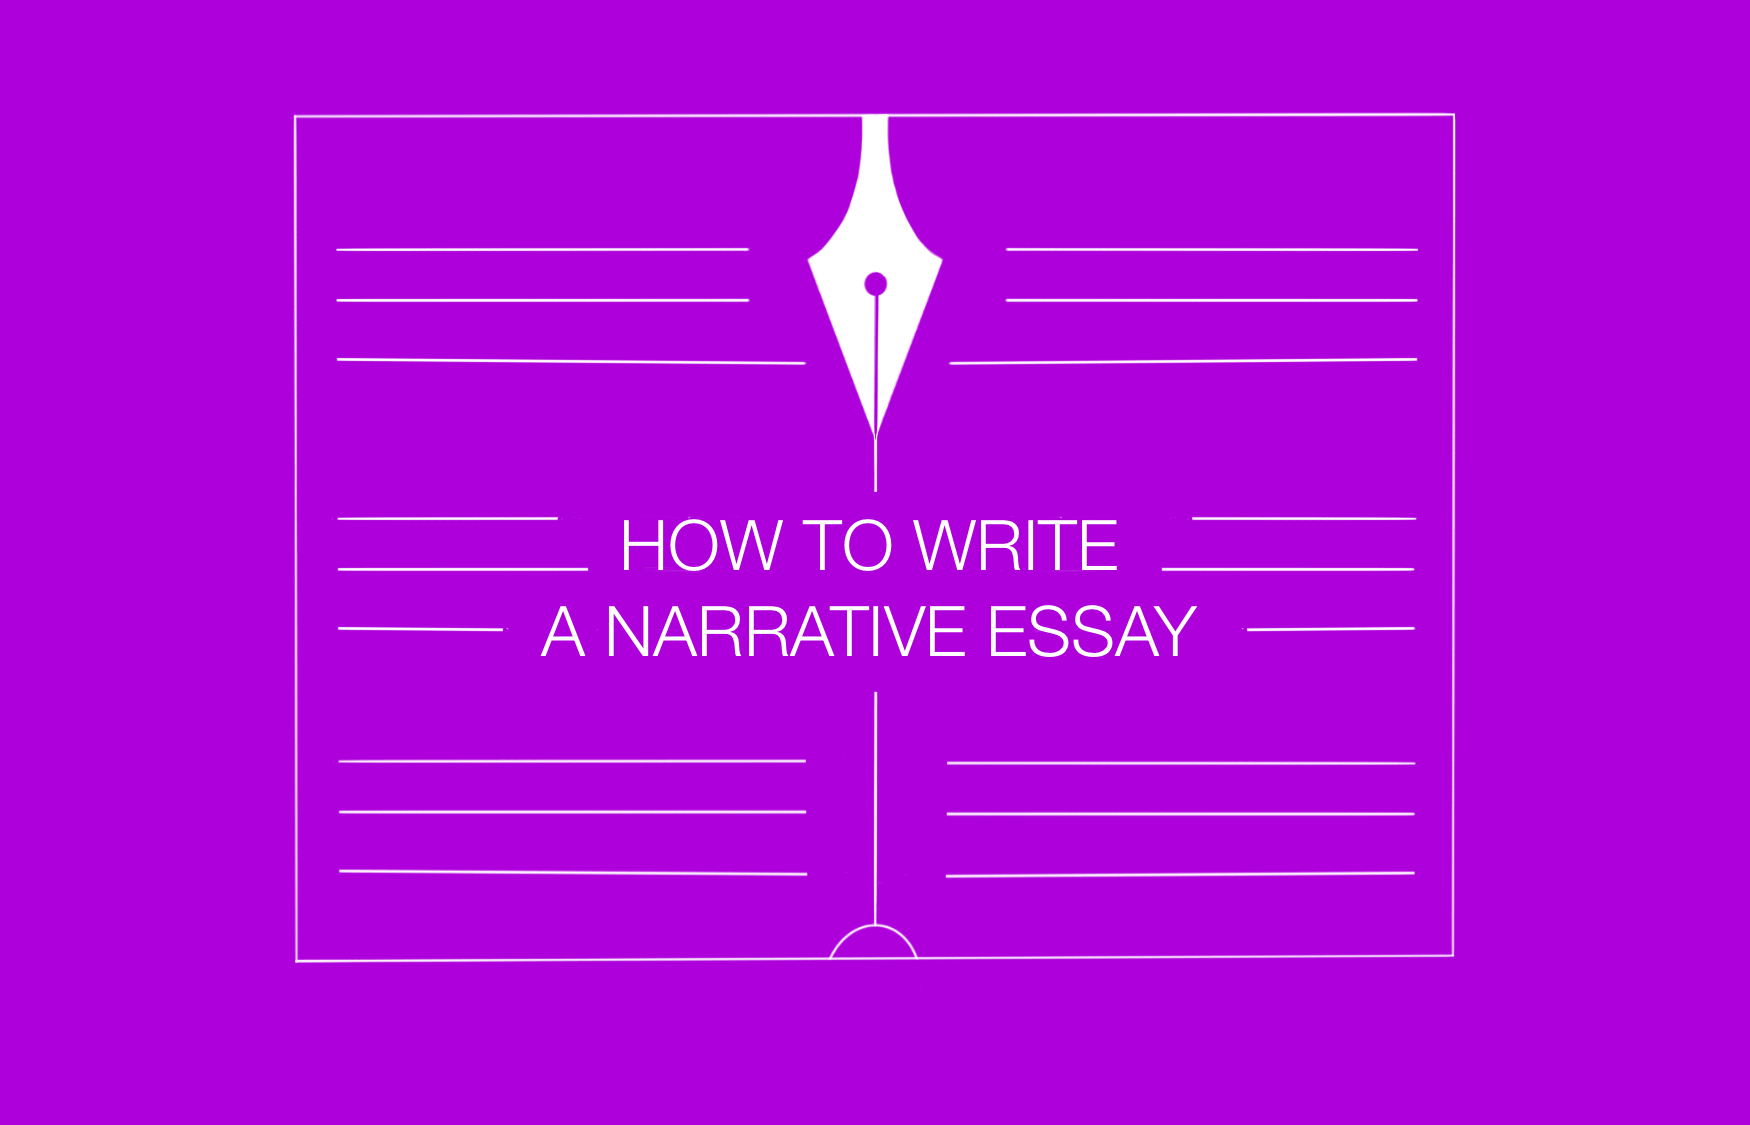 Affordable essay writing services